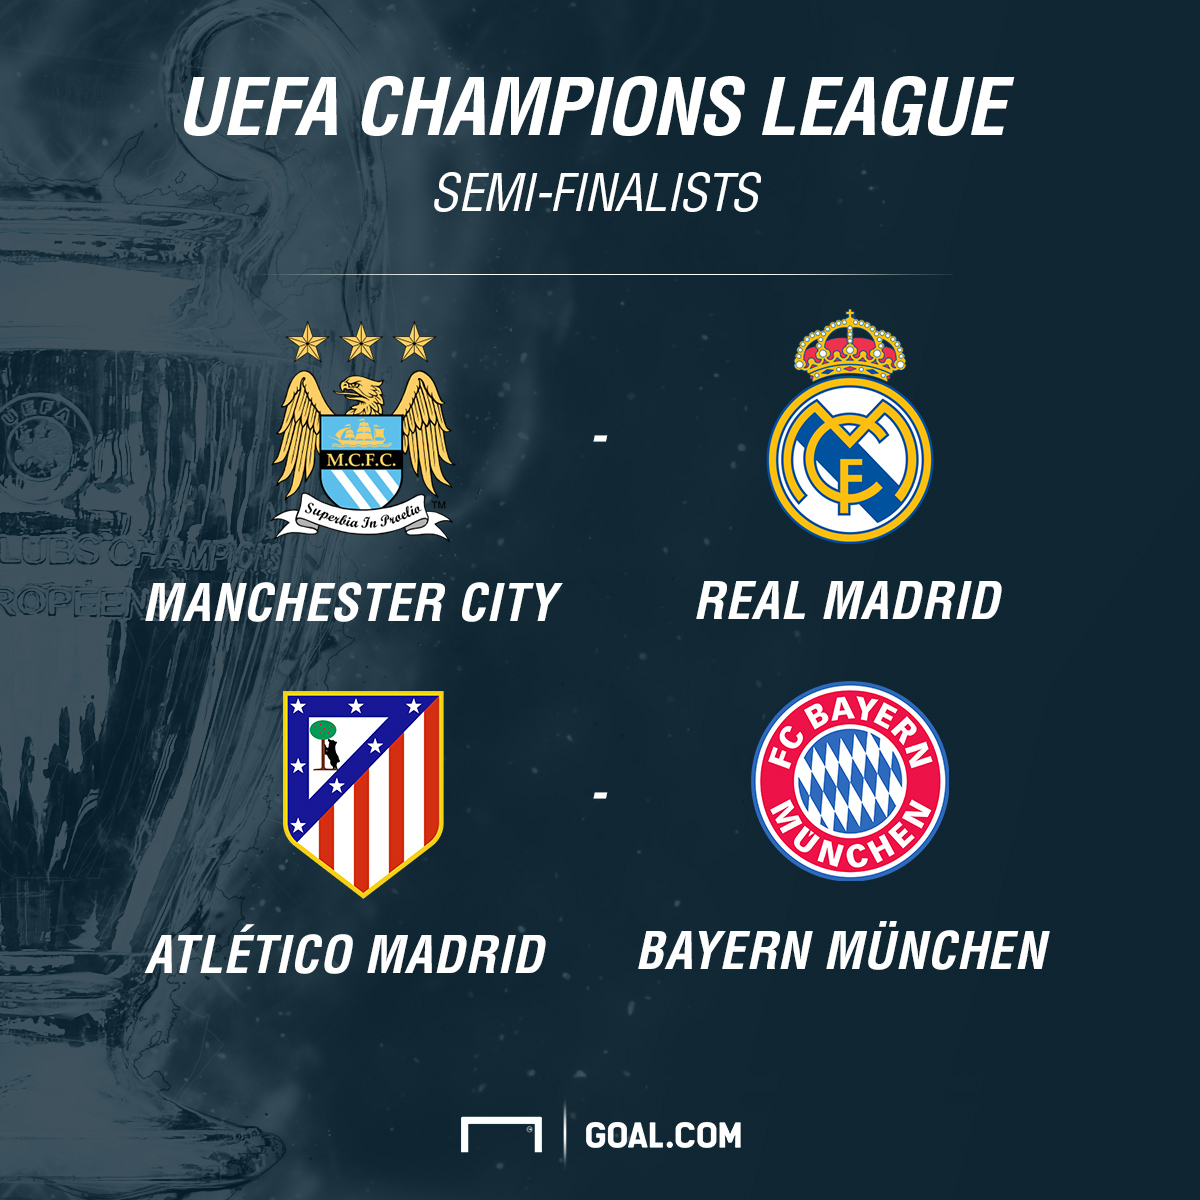 Real Madrid To Play Man-City, Avoids Both Atletico And Bayern Munich